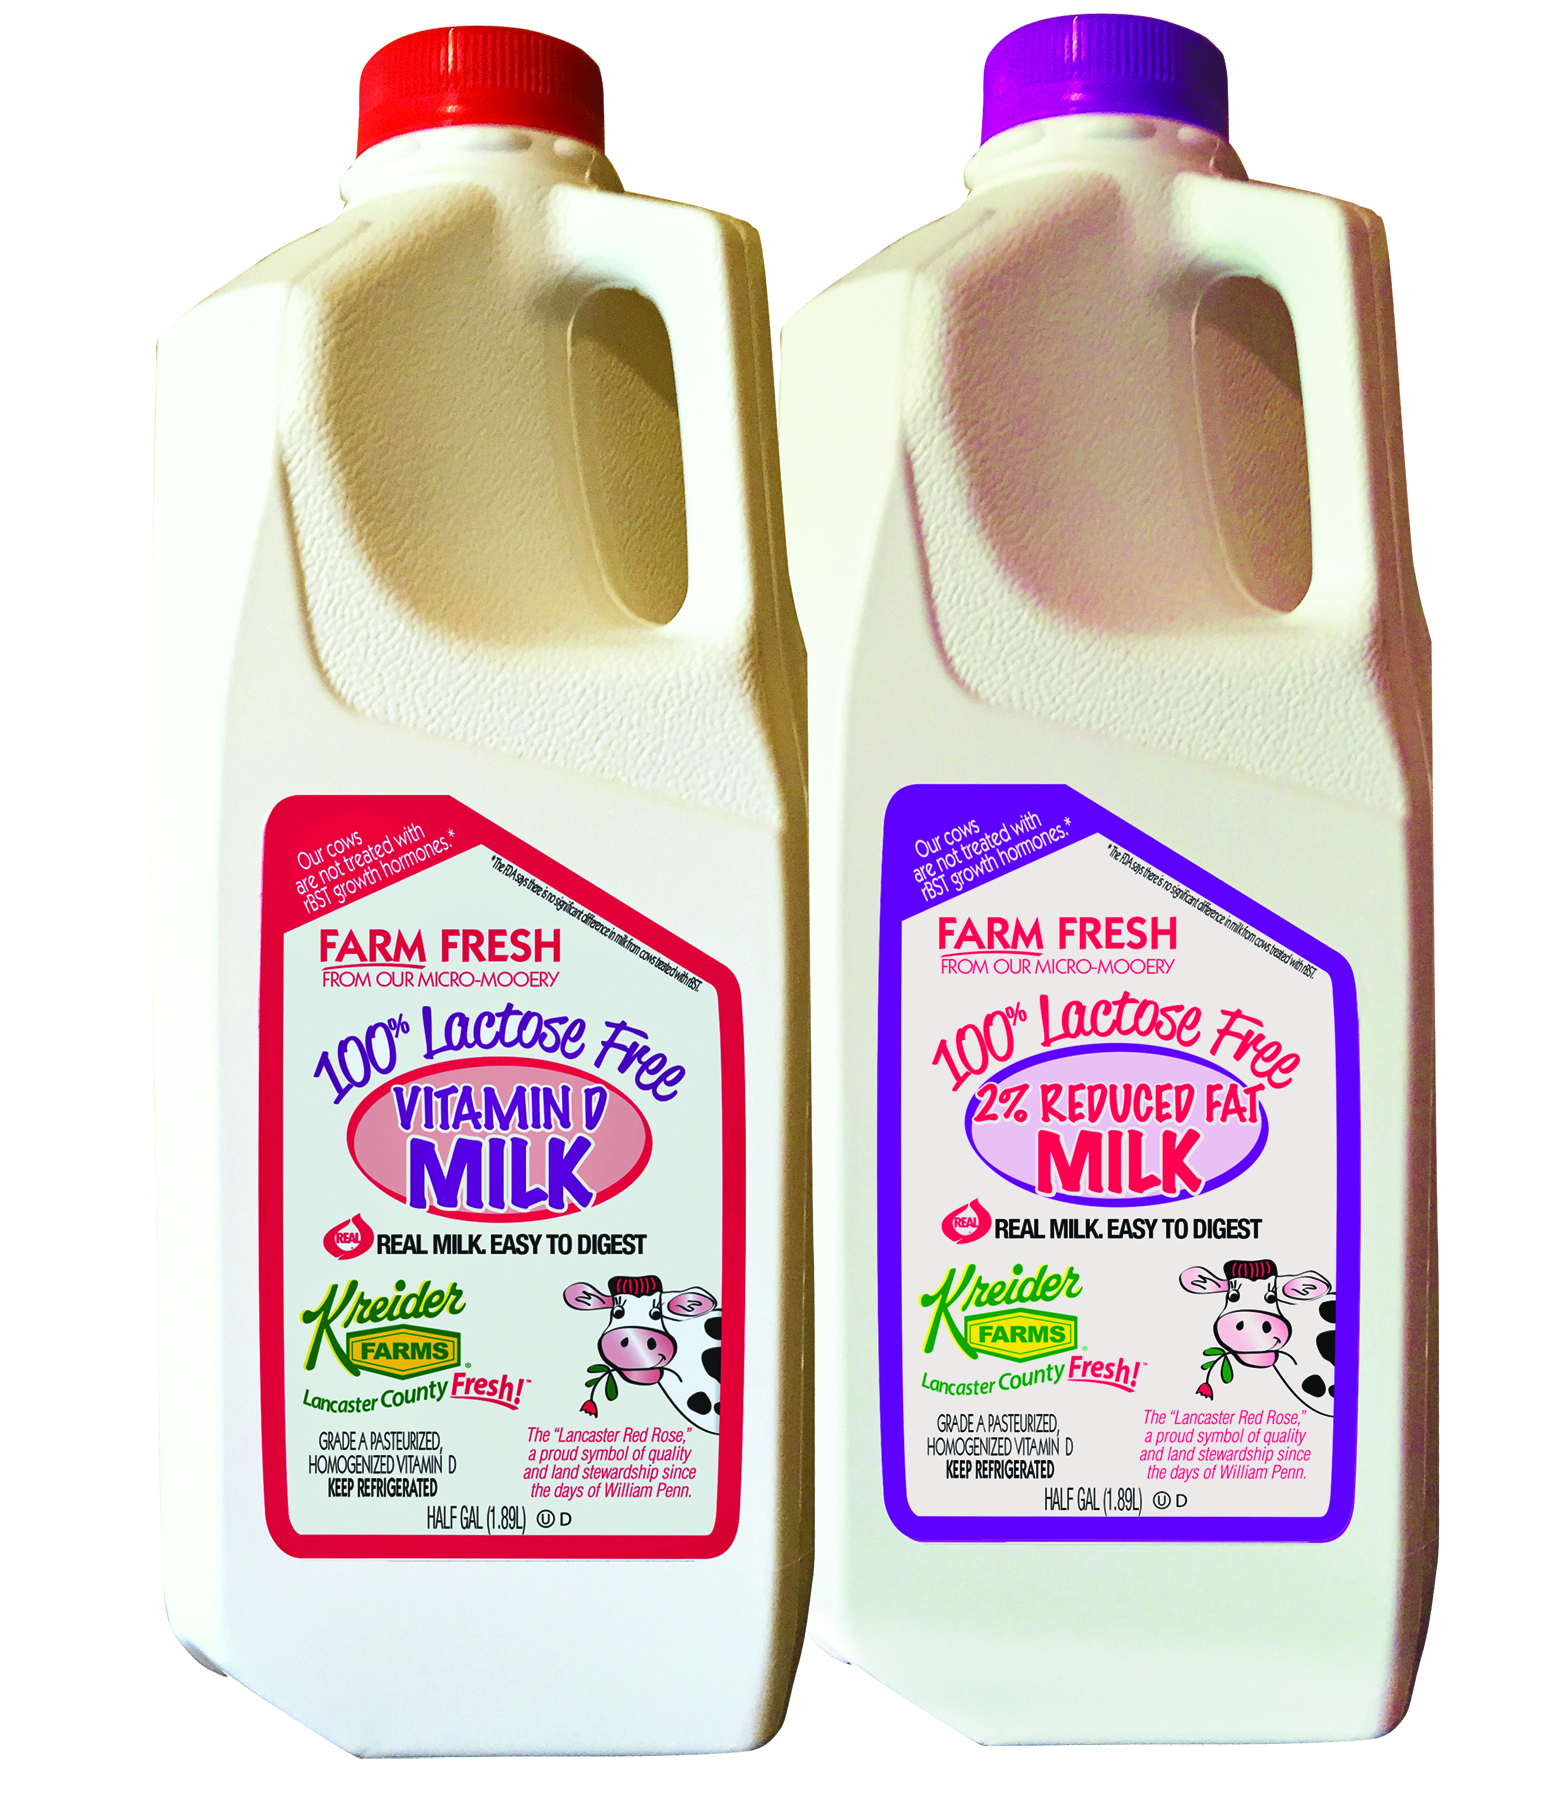 Save $0.50 on any half gallon of Kreider's Lactose Free Milk